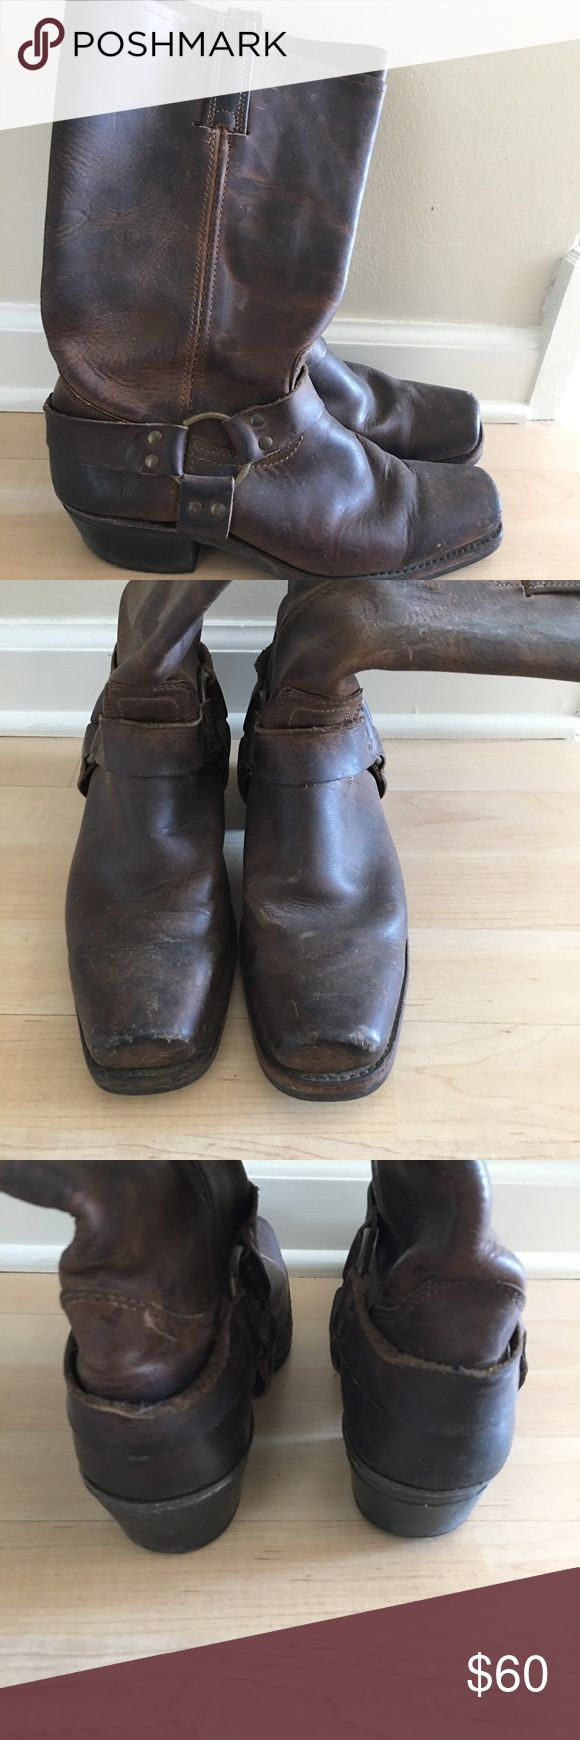 Women's Frye harness boot size 10 Perfectly broken in brown FRYE harness boot size 10 Frye Shoes